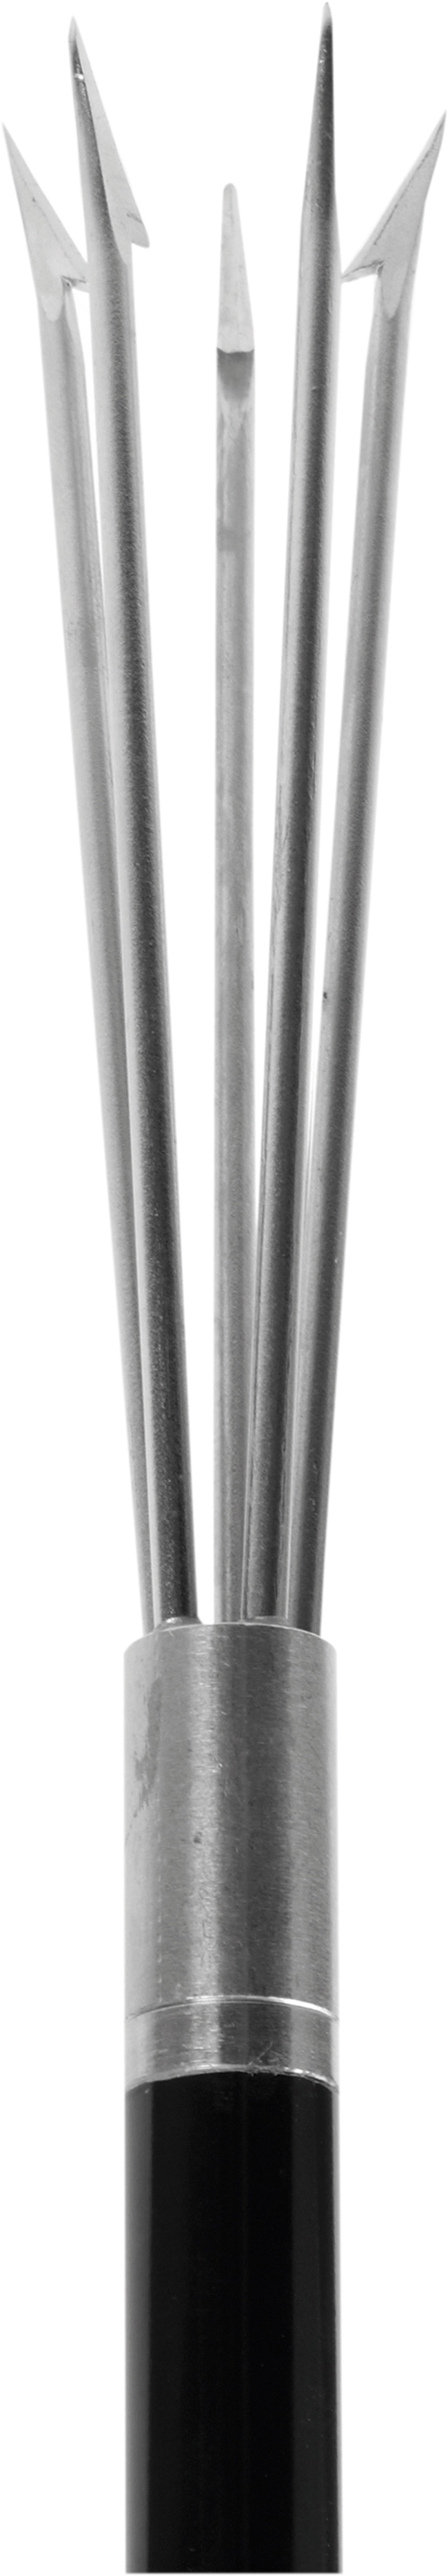 Aluminium Pole Spear